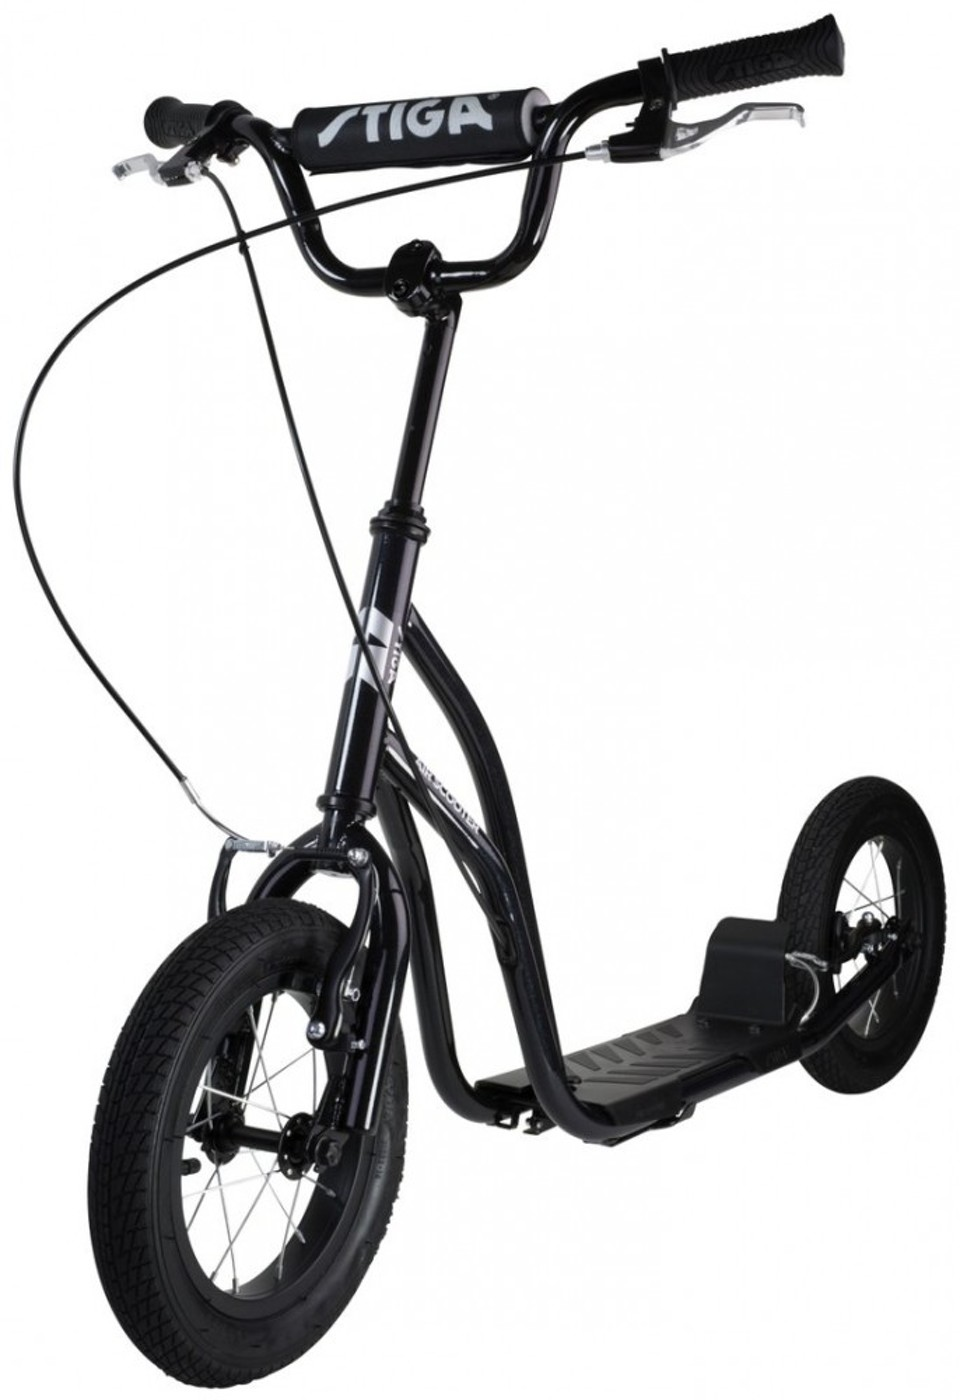 STIGA Air Scooter 12